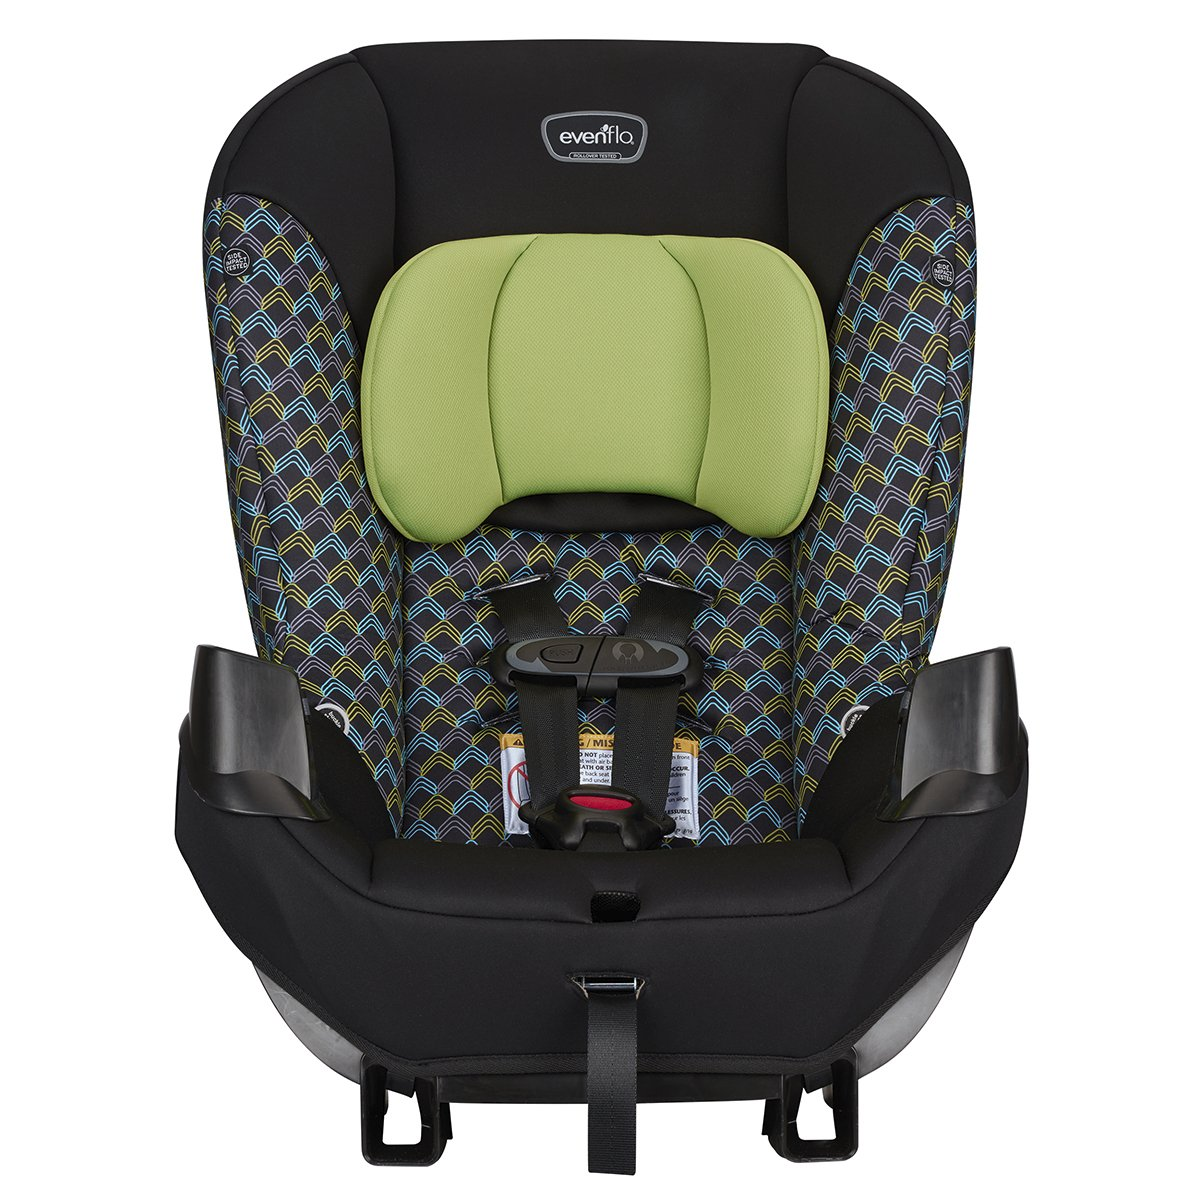 Evenflo 34712143C Sonus Converitible Car Seat, Boomerang Green Evenfo